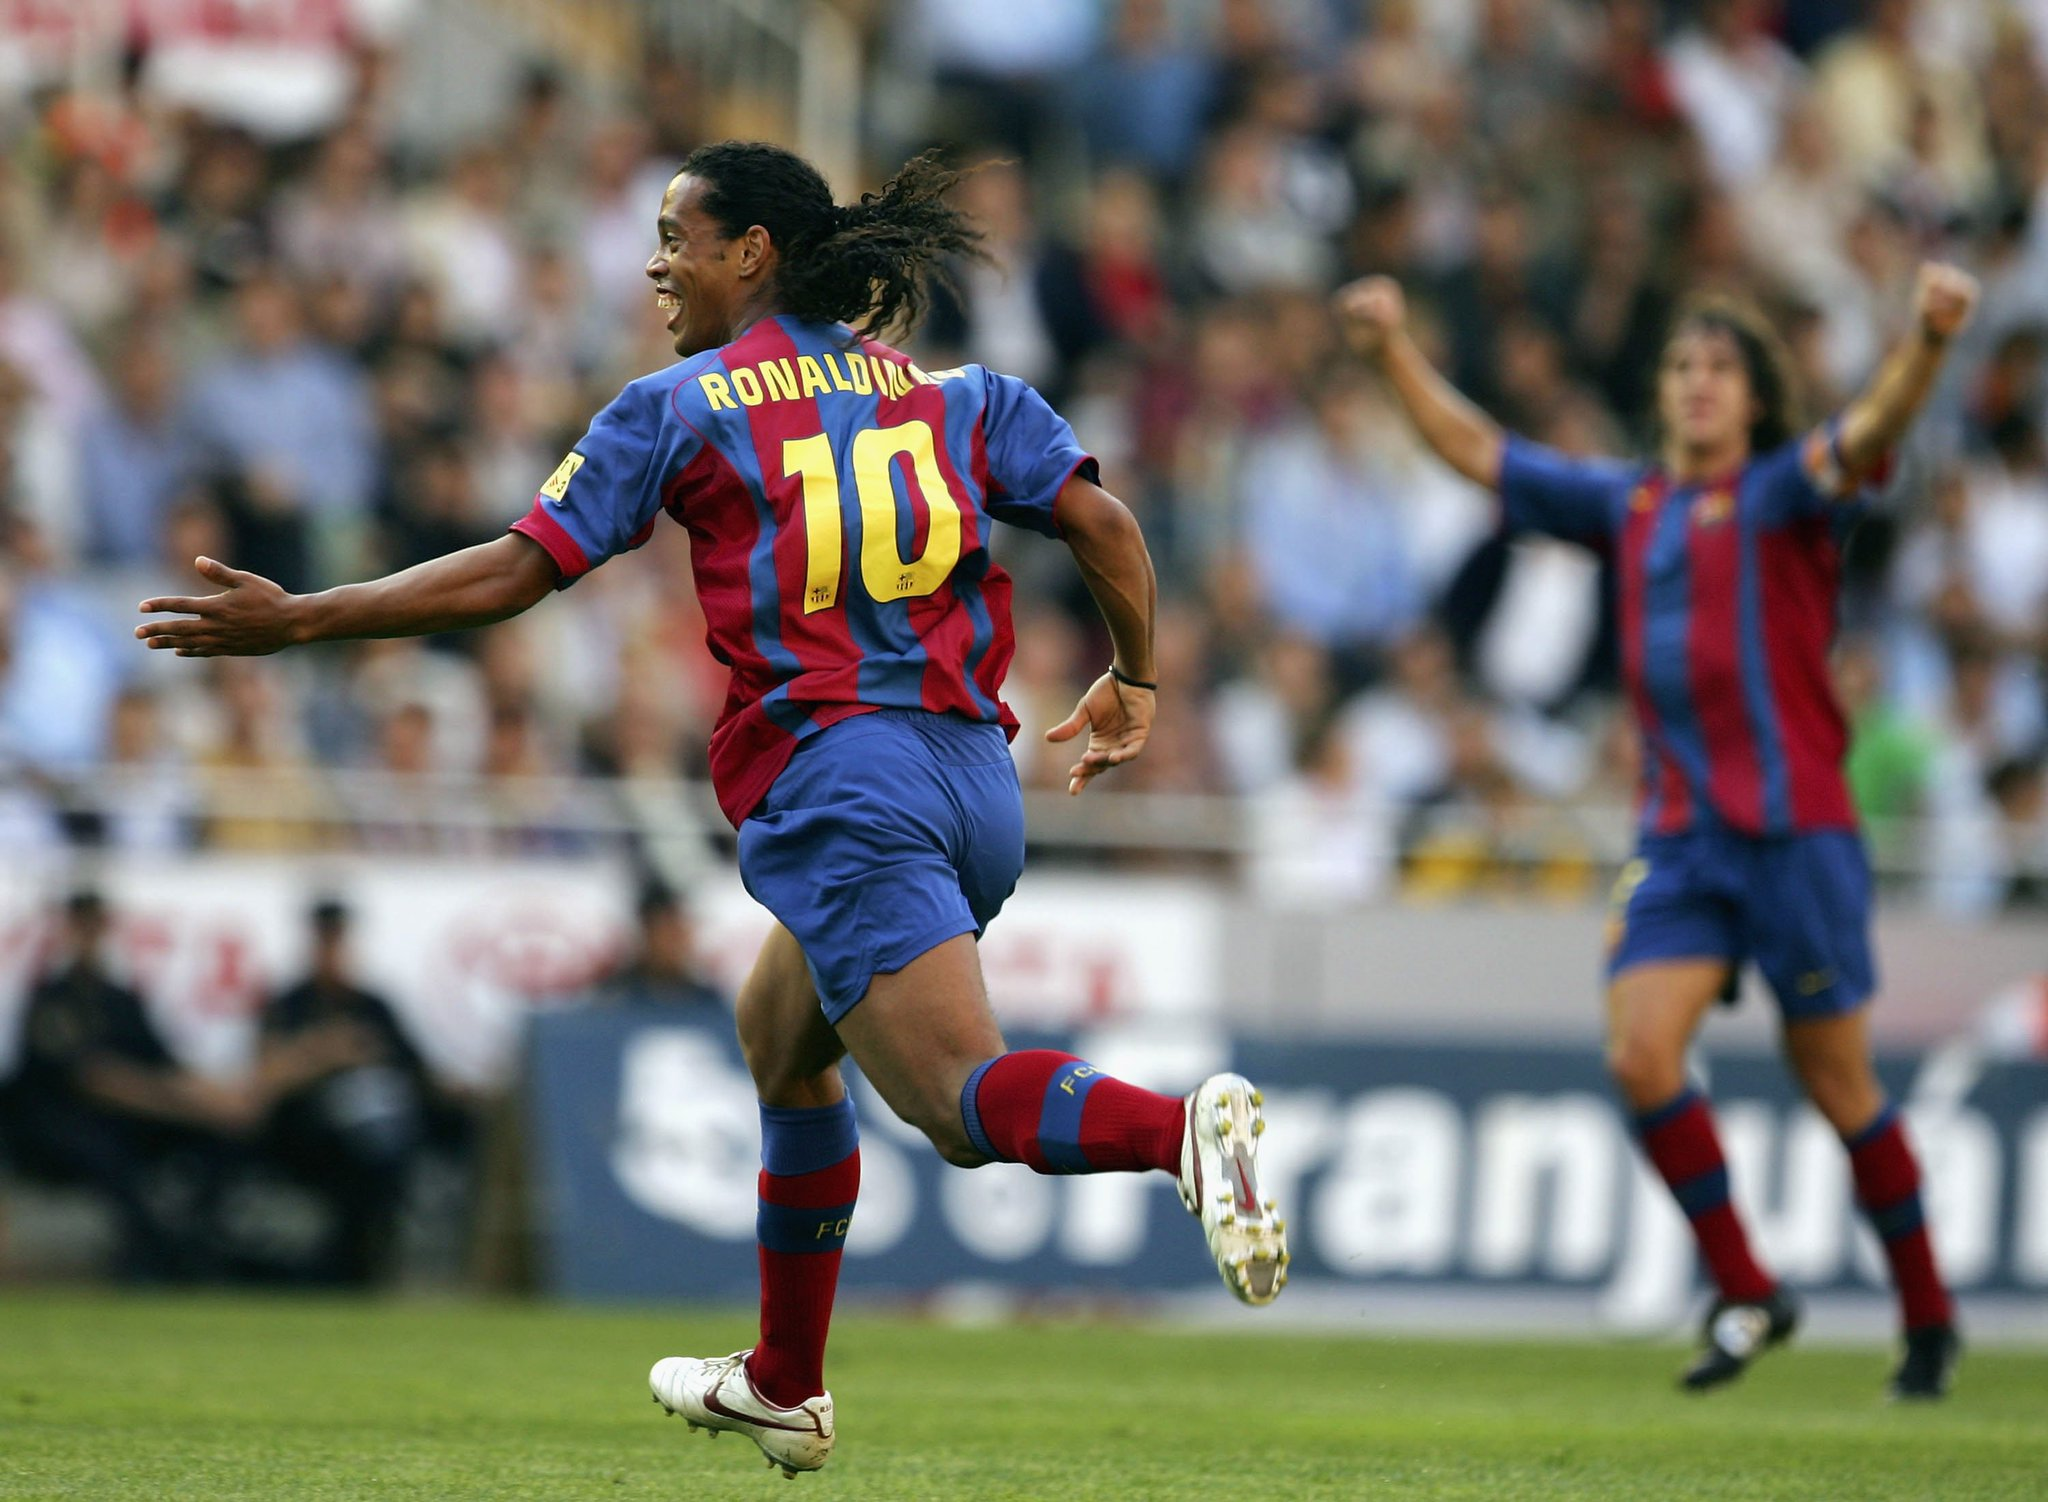 ���� Ronaldinho: 'I've been lucky to win it all, I am fulfilled - the memories are unforgettable.' �� #UCL https://t.co/HkEGHLsiRN